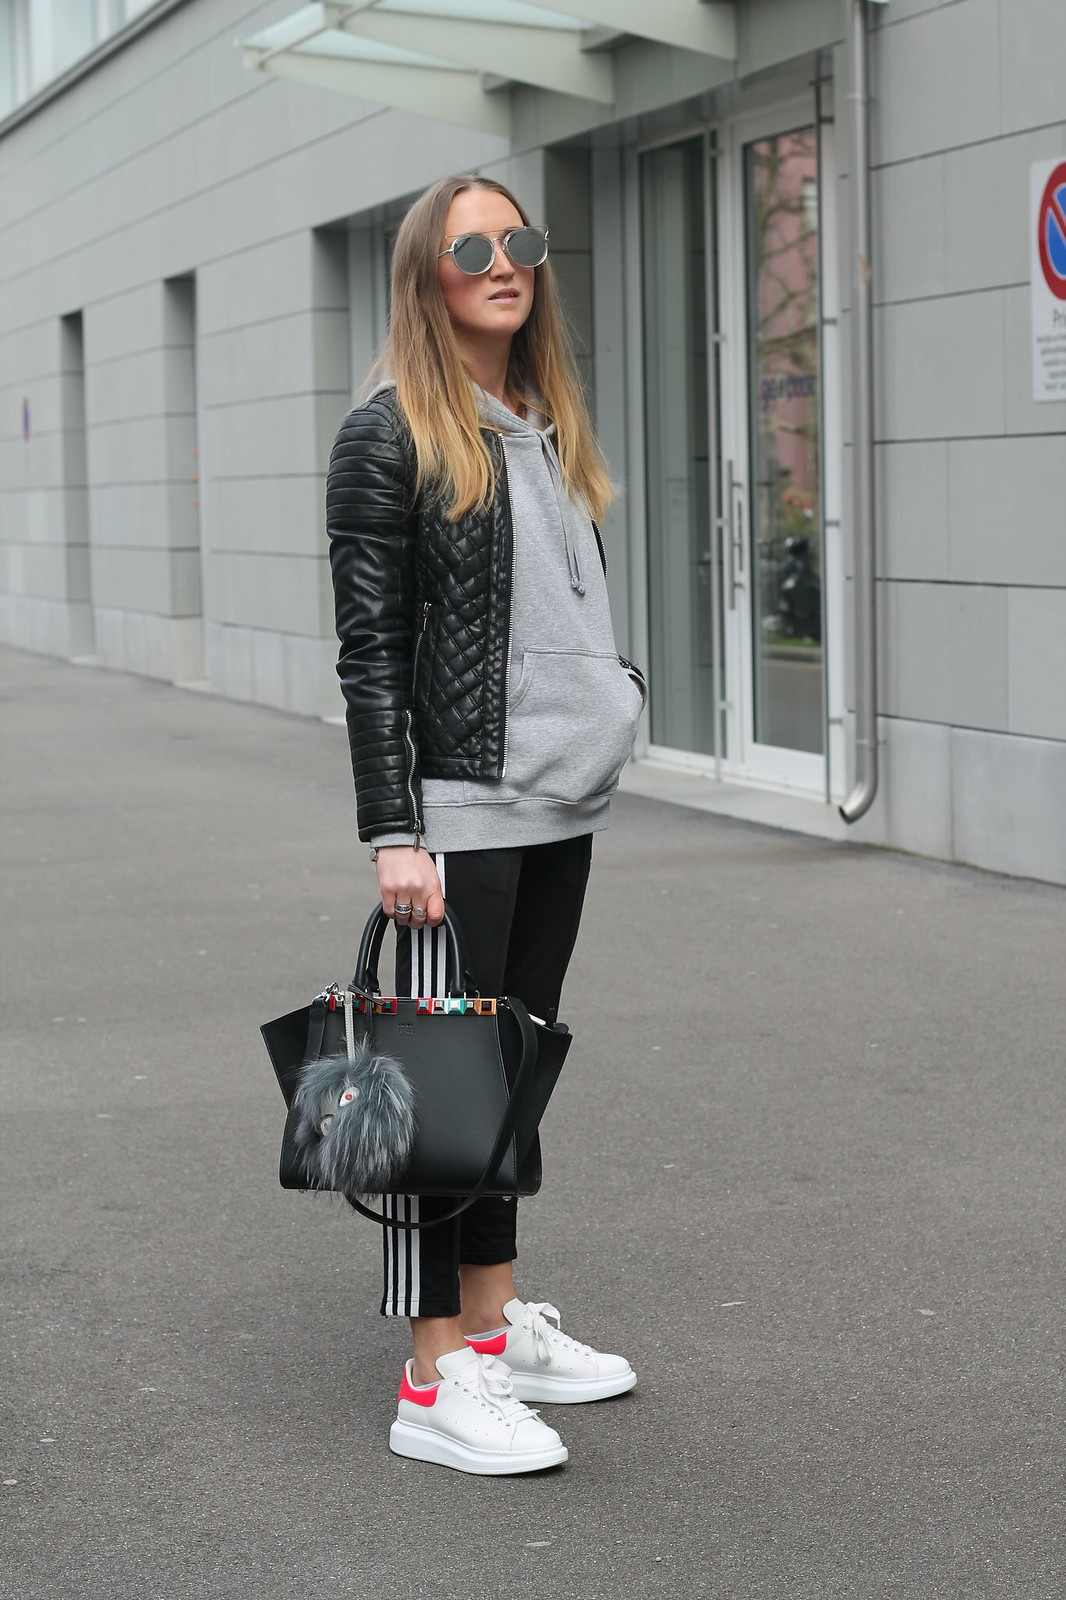 jogging-pants-and-alexander-mcqueen-sneakers-whole-outfit-side-wiebkembg